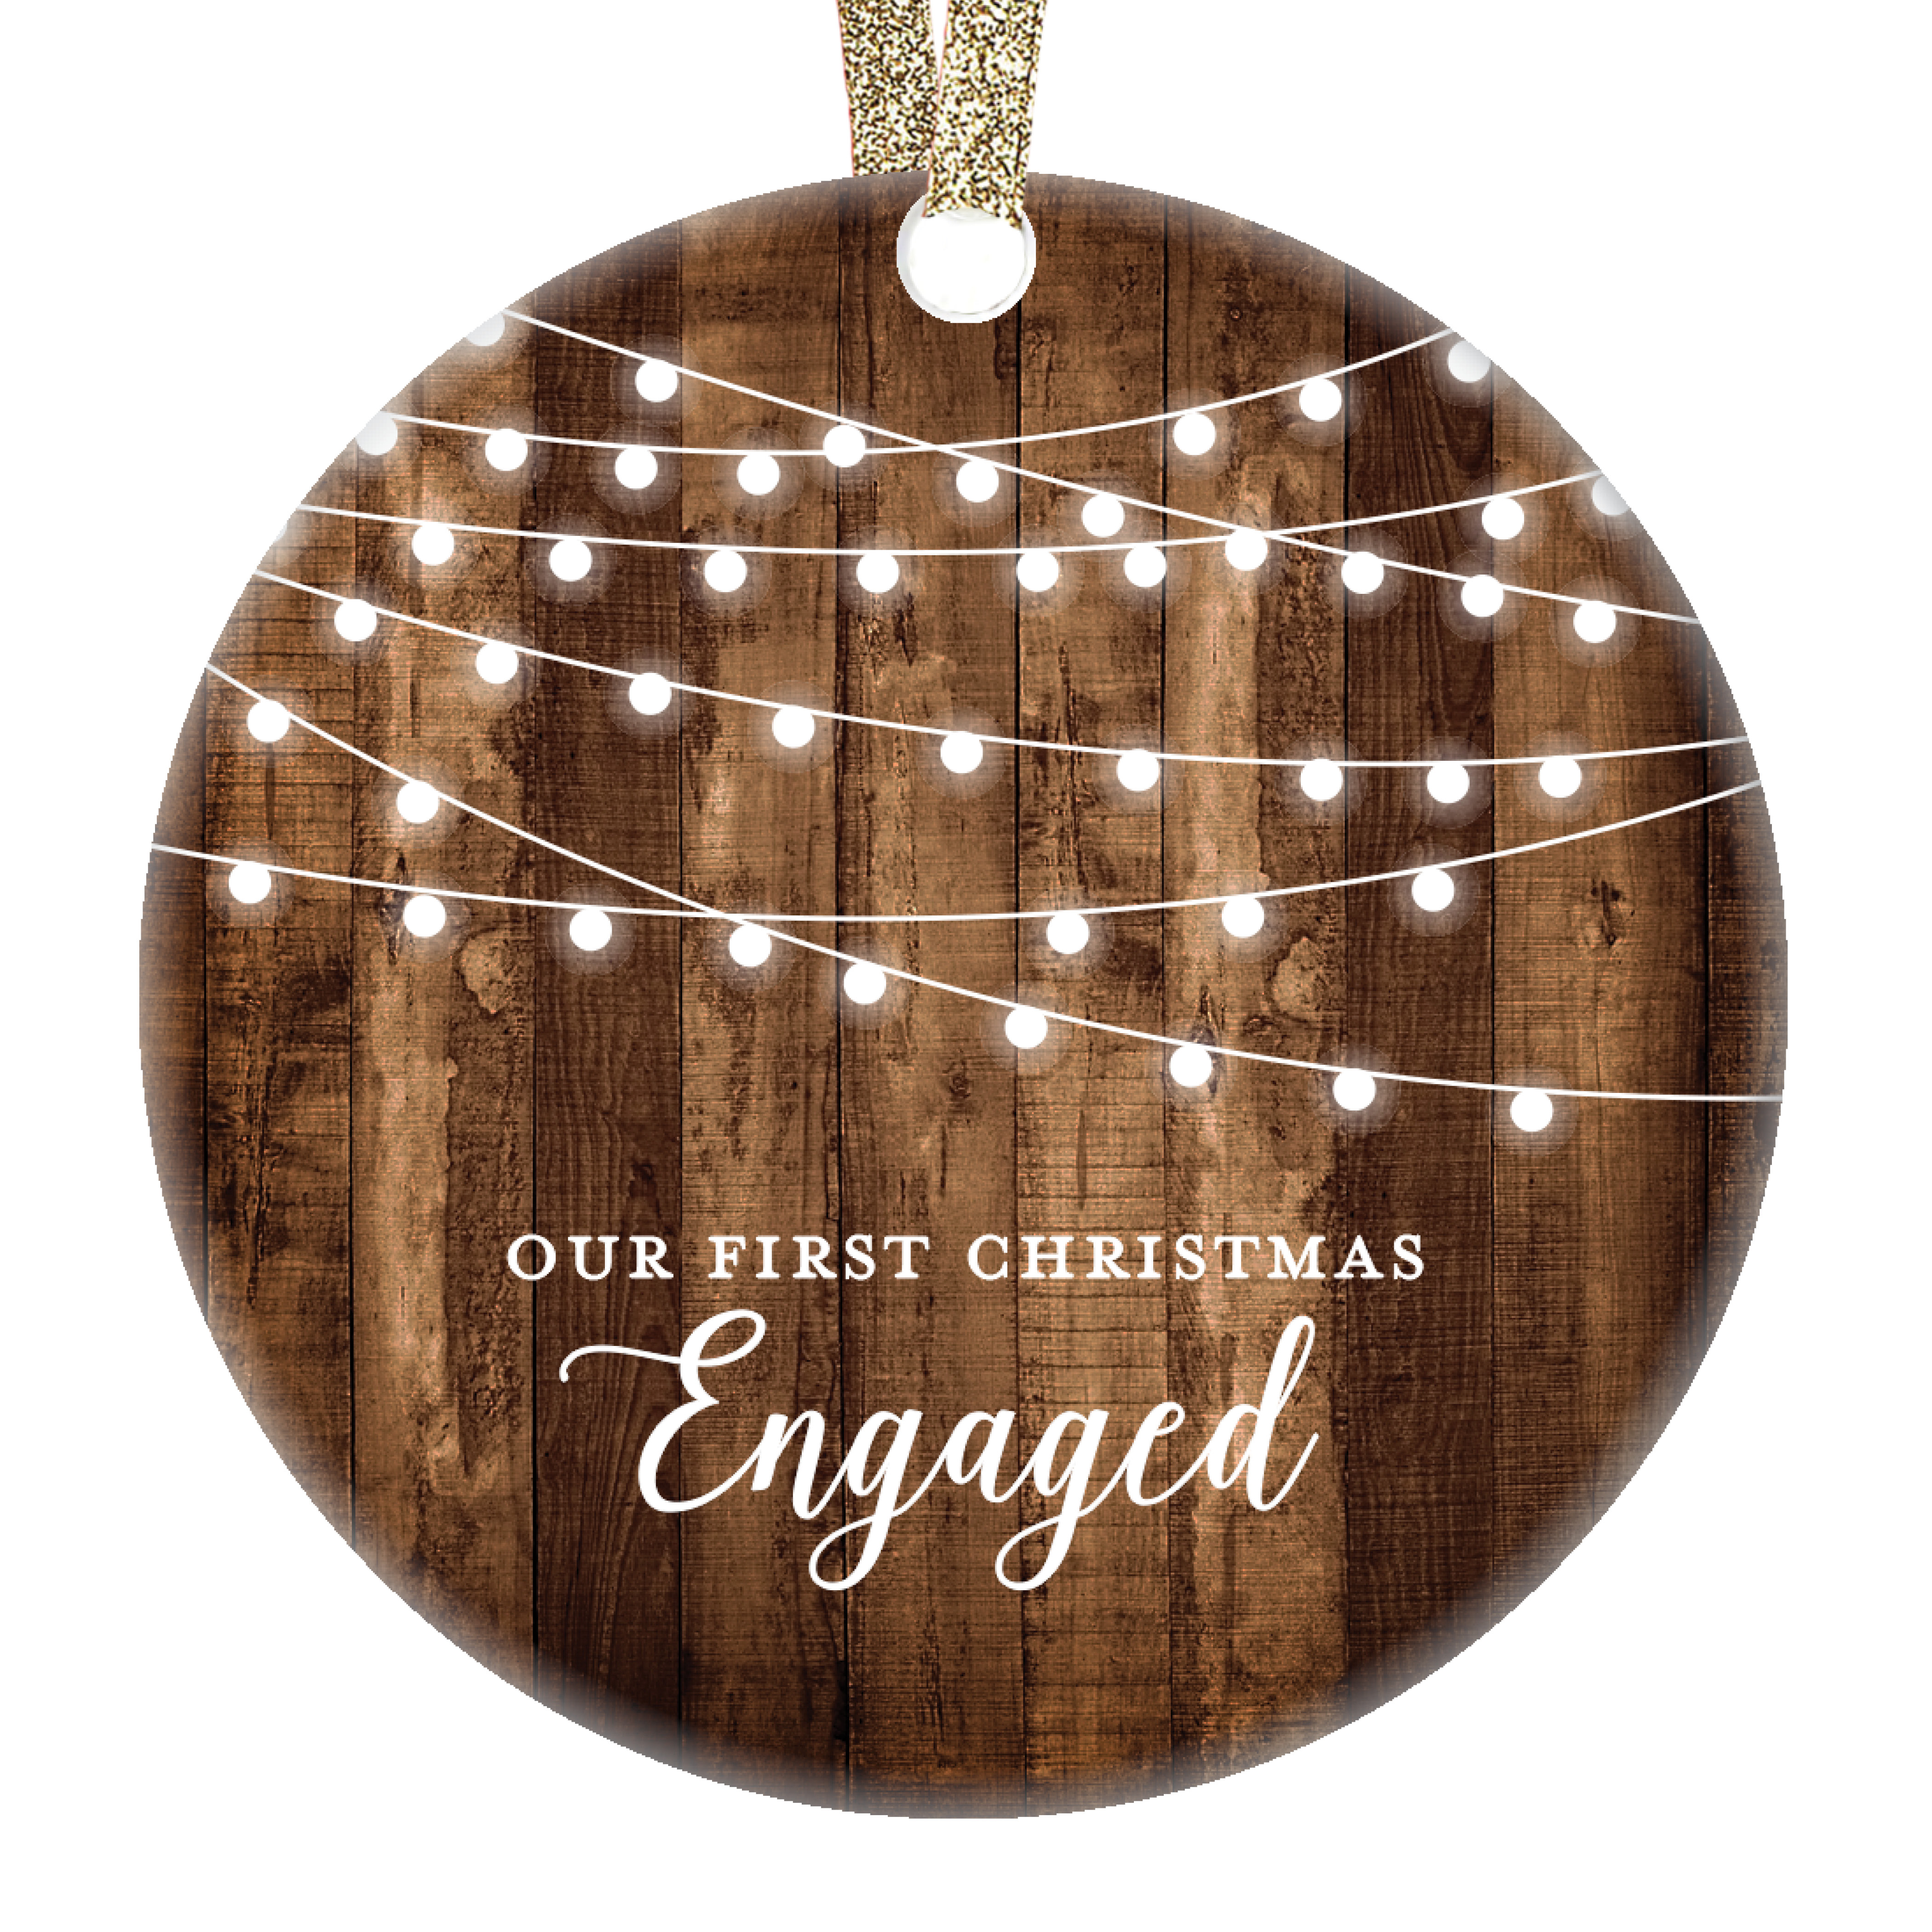 Newly Engaged Gift Personalized Wood Hanpainted Ornament Couple Gift Holiday Decor Our First Christmas Engaged Ornament Engagement Gift